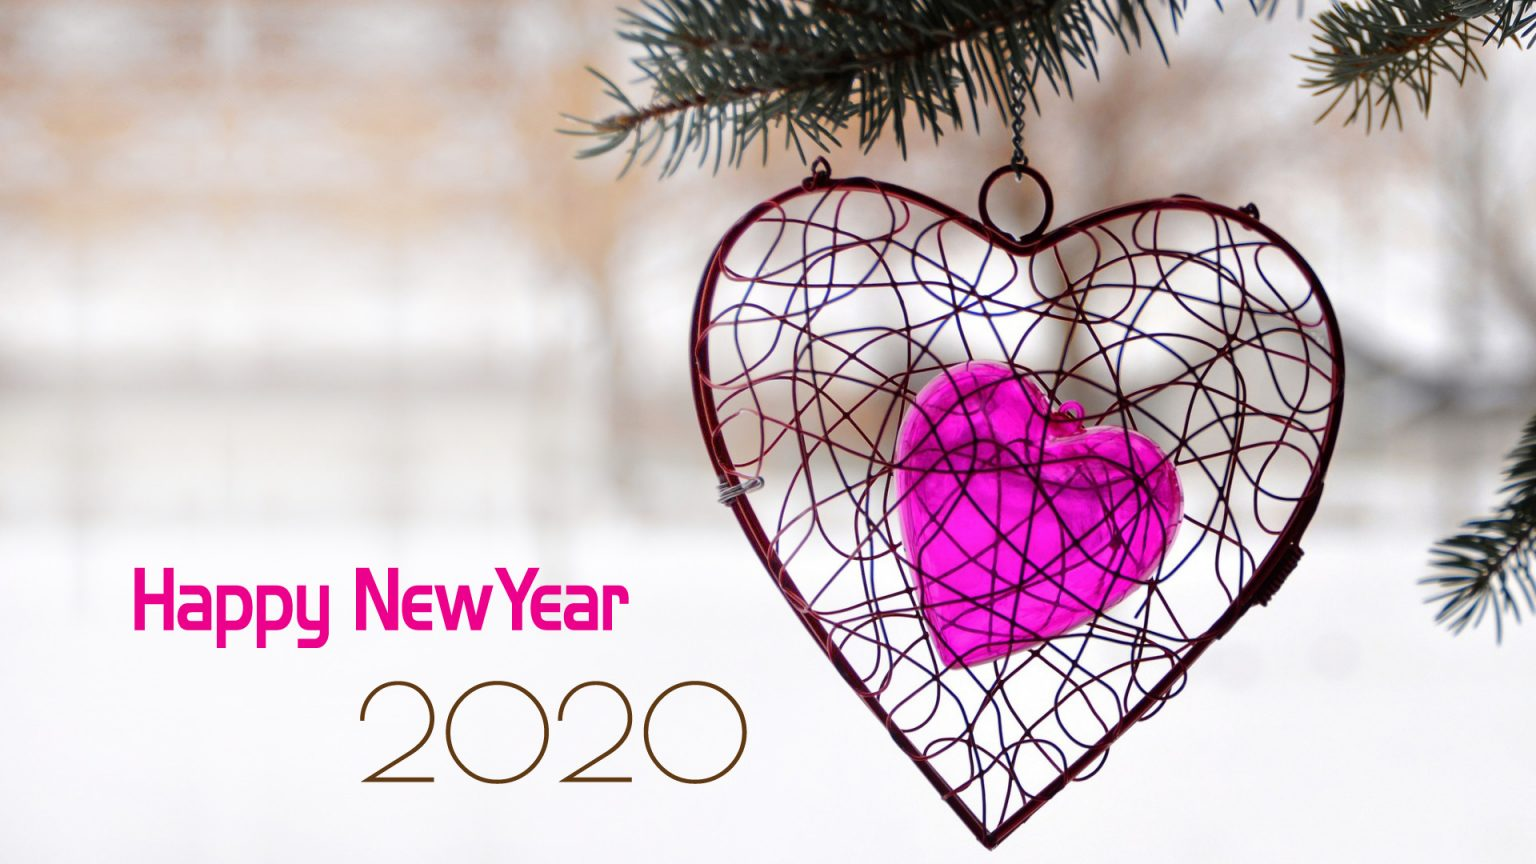 Happy New Year 2020 HD Wallpapers, Images, Pictures, GIFs, Stickers | Download Here